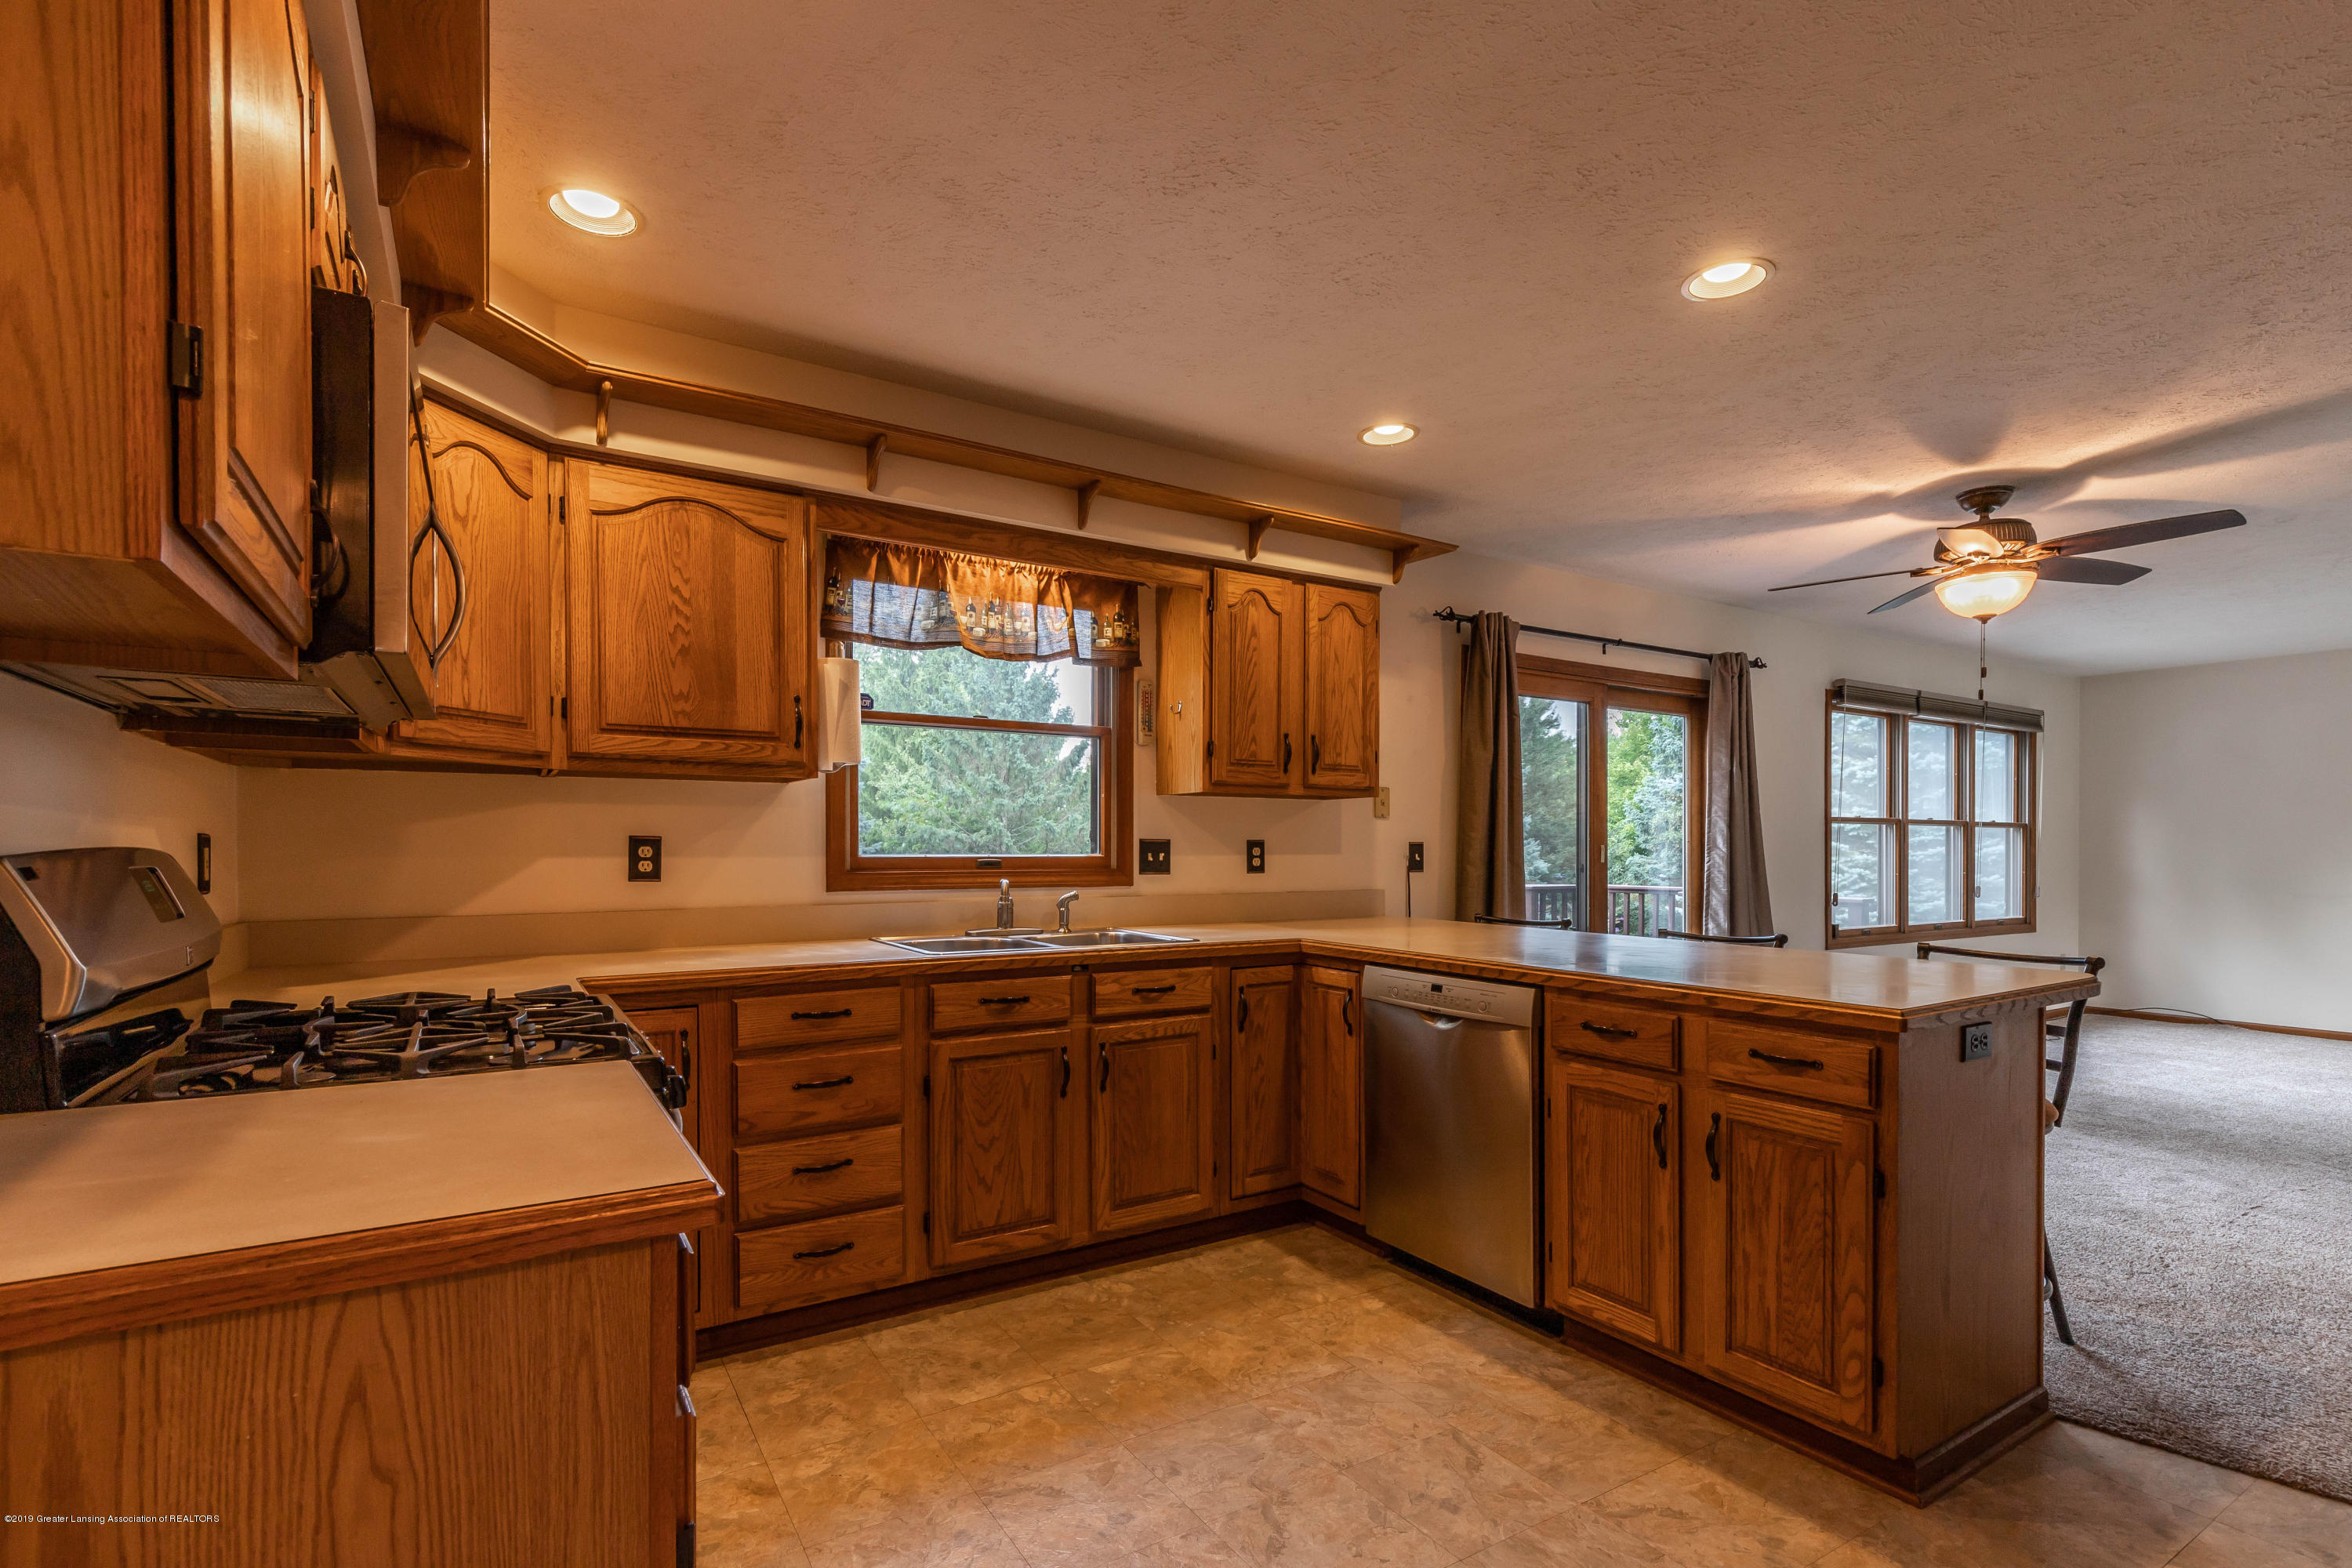 1258 Castlewood Cir - candlewoodkit4 (1 of 1) - 4